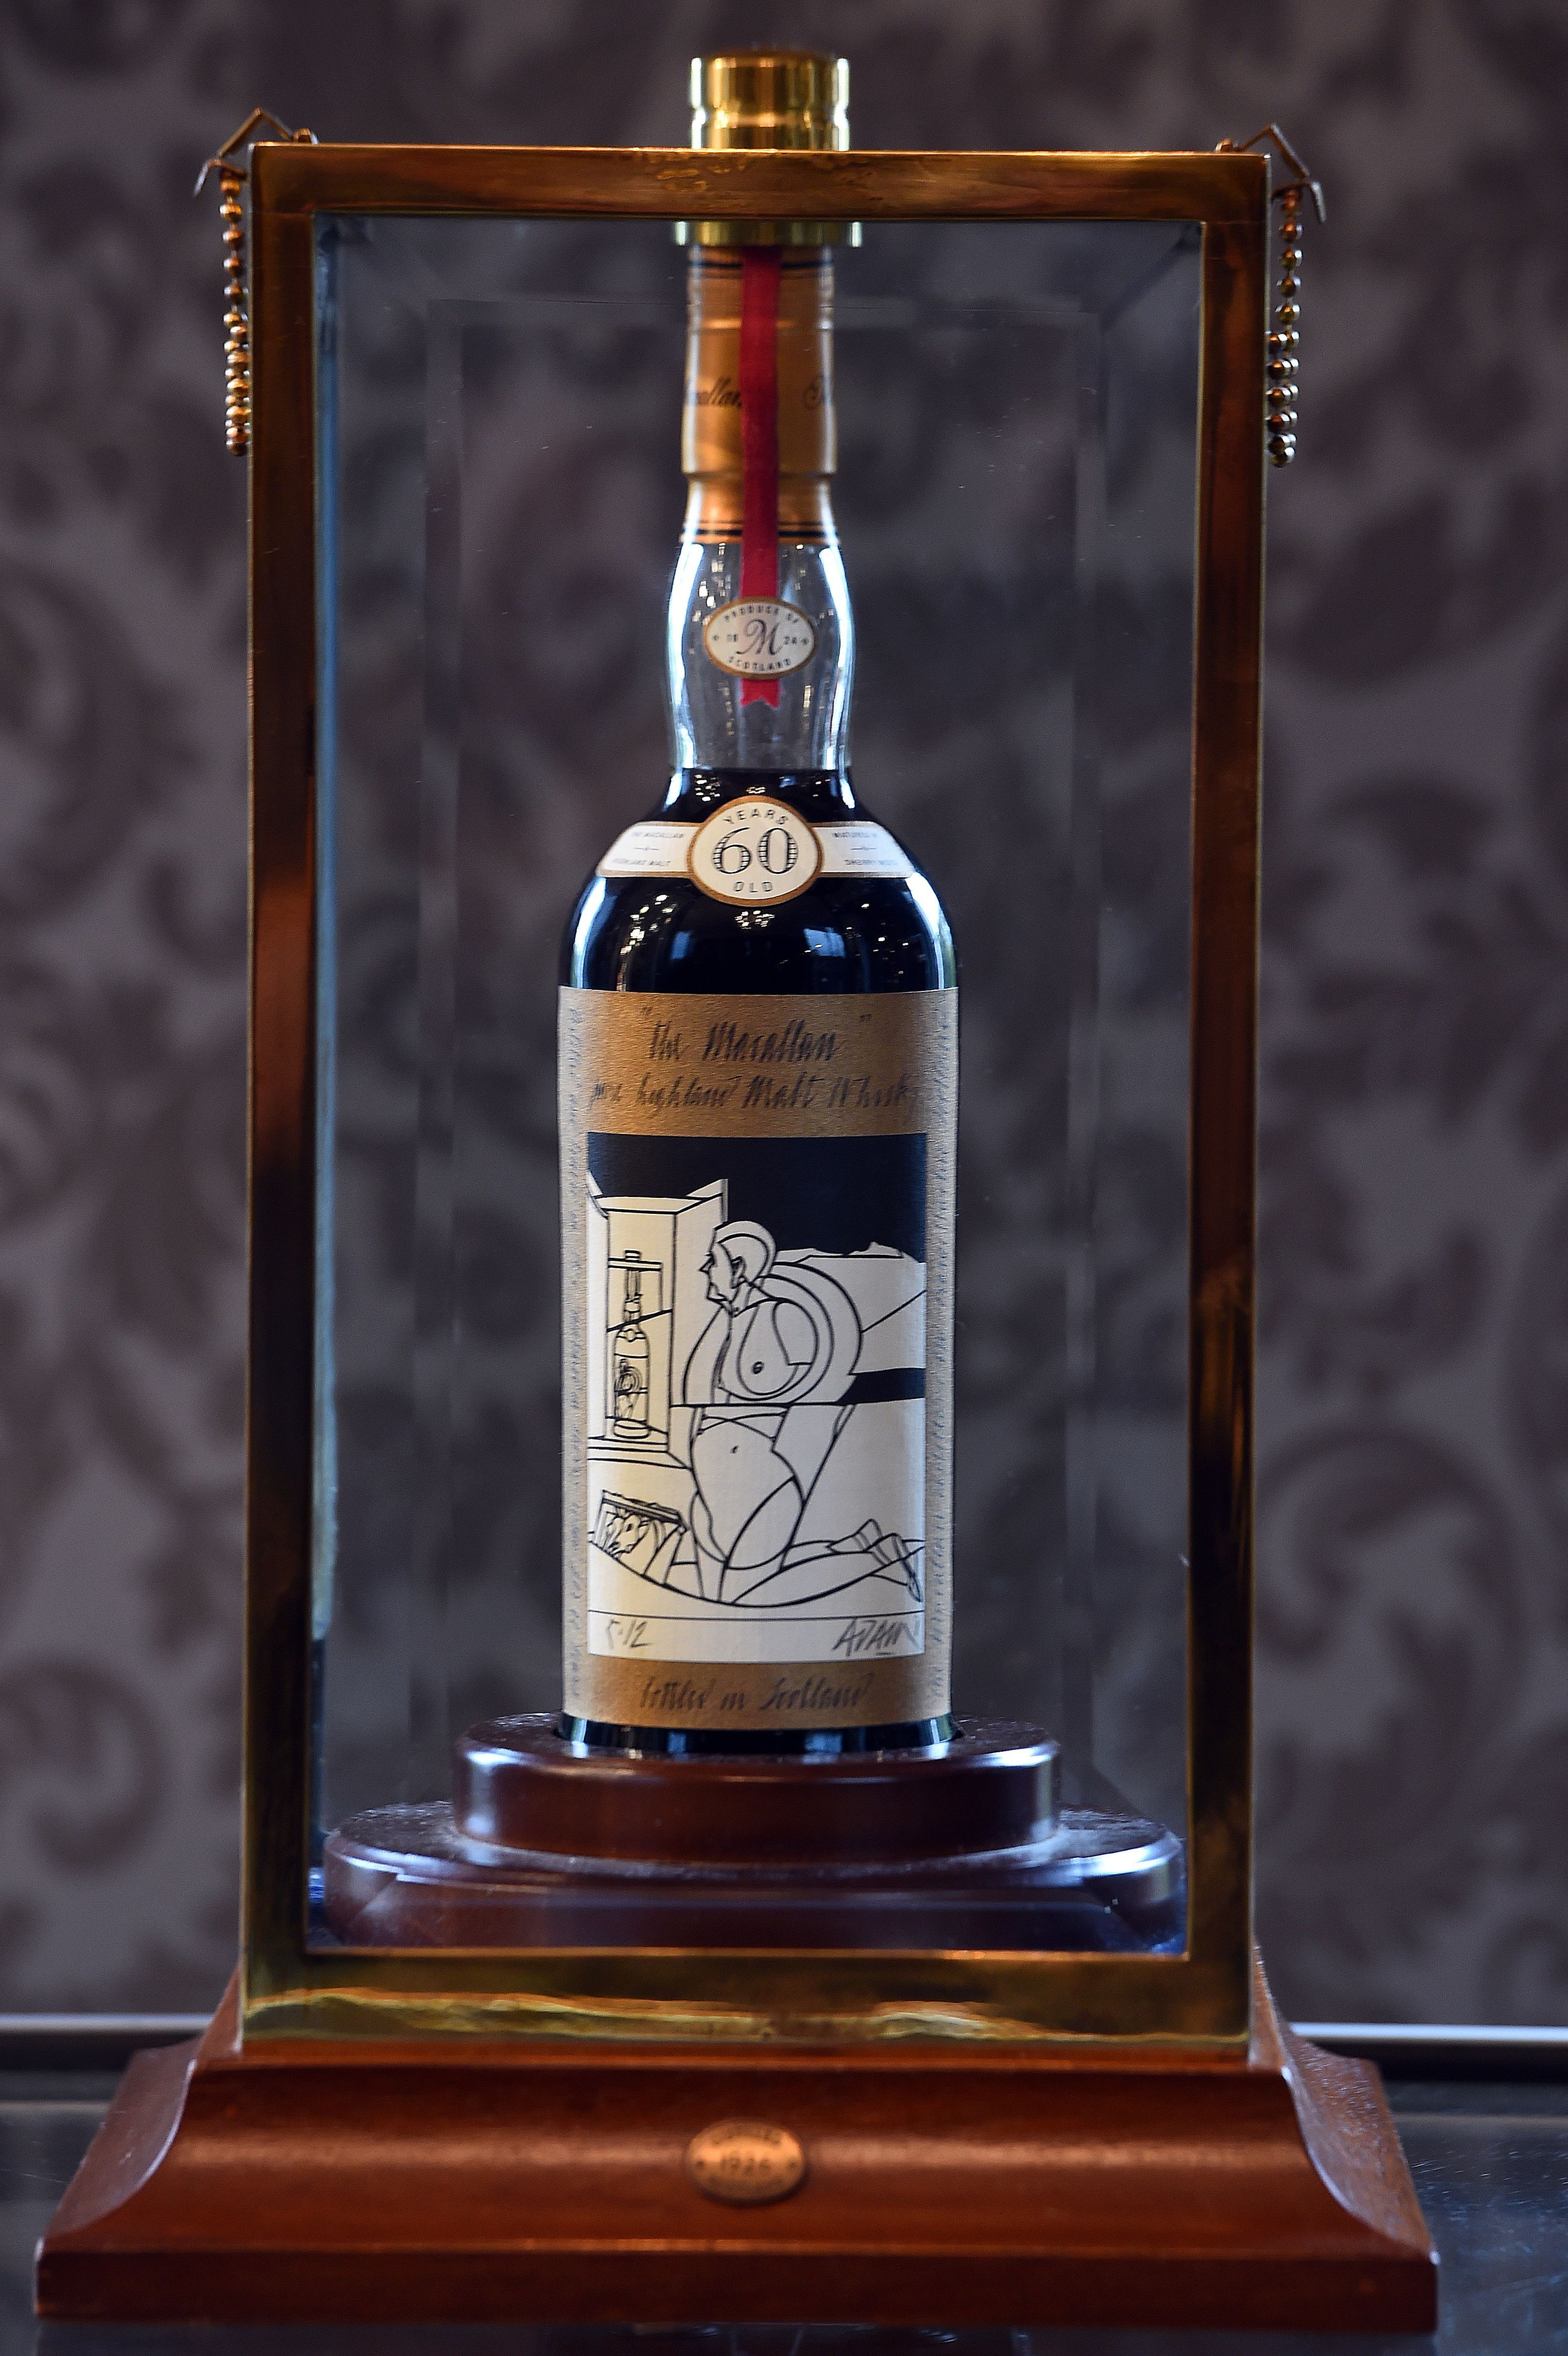 The World's Most Expensive Bottle of Whisky Just Sold for $1.1 Million